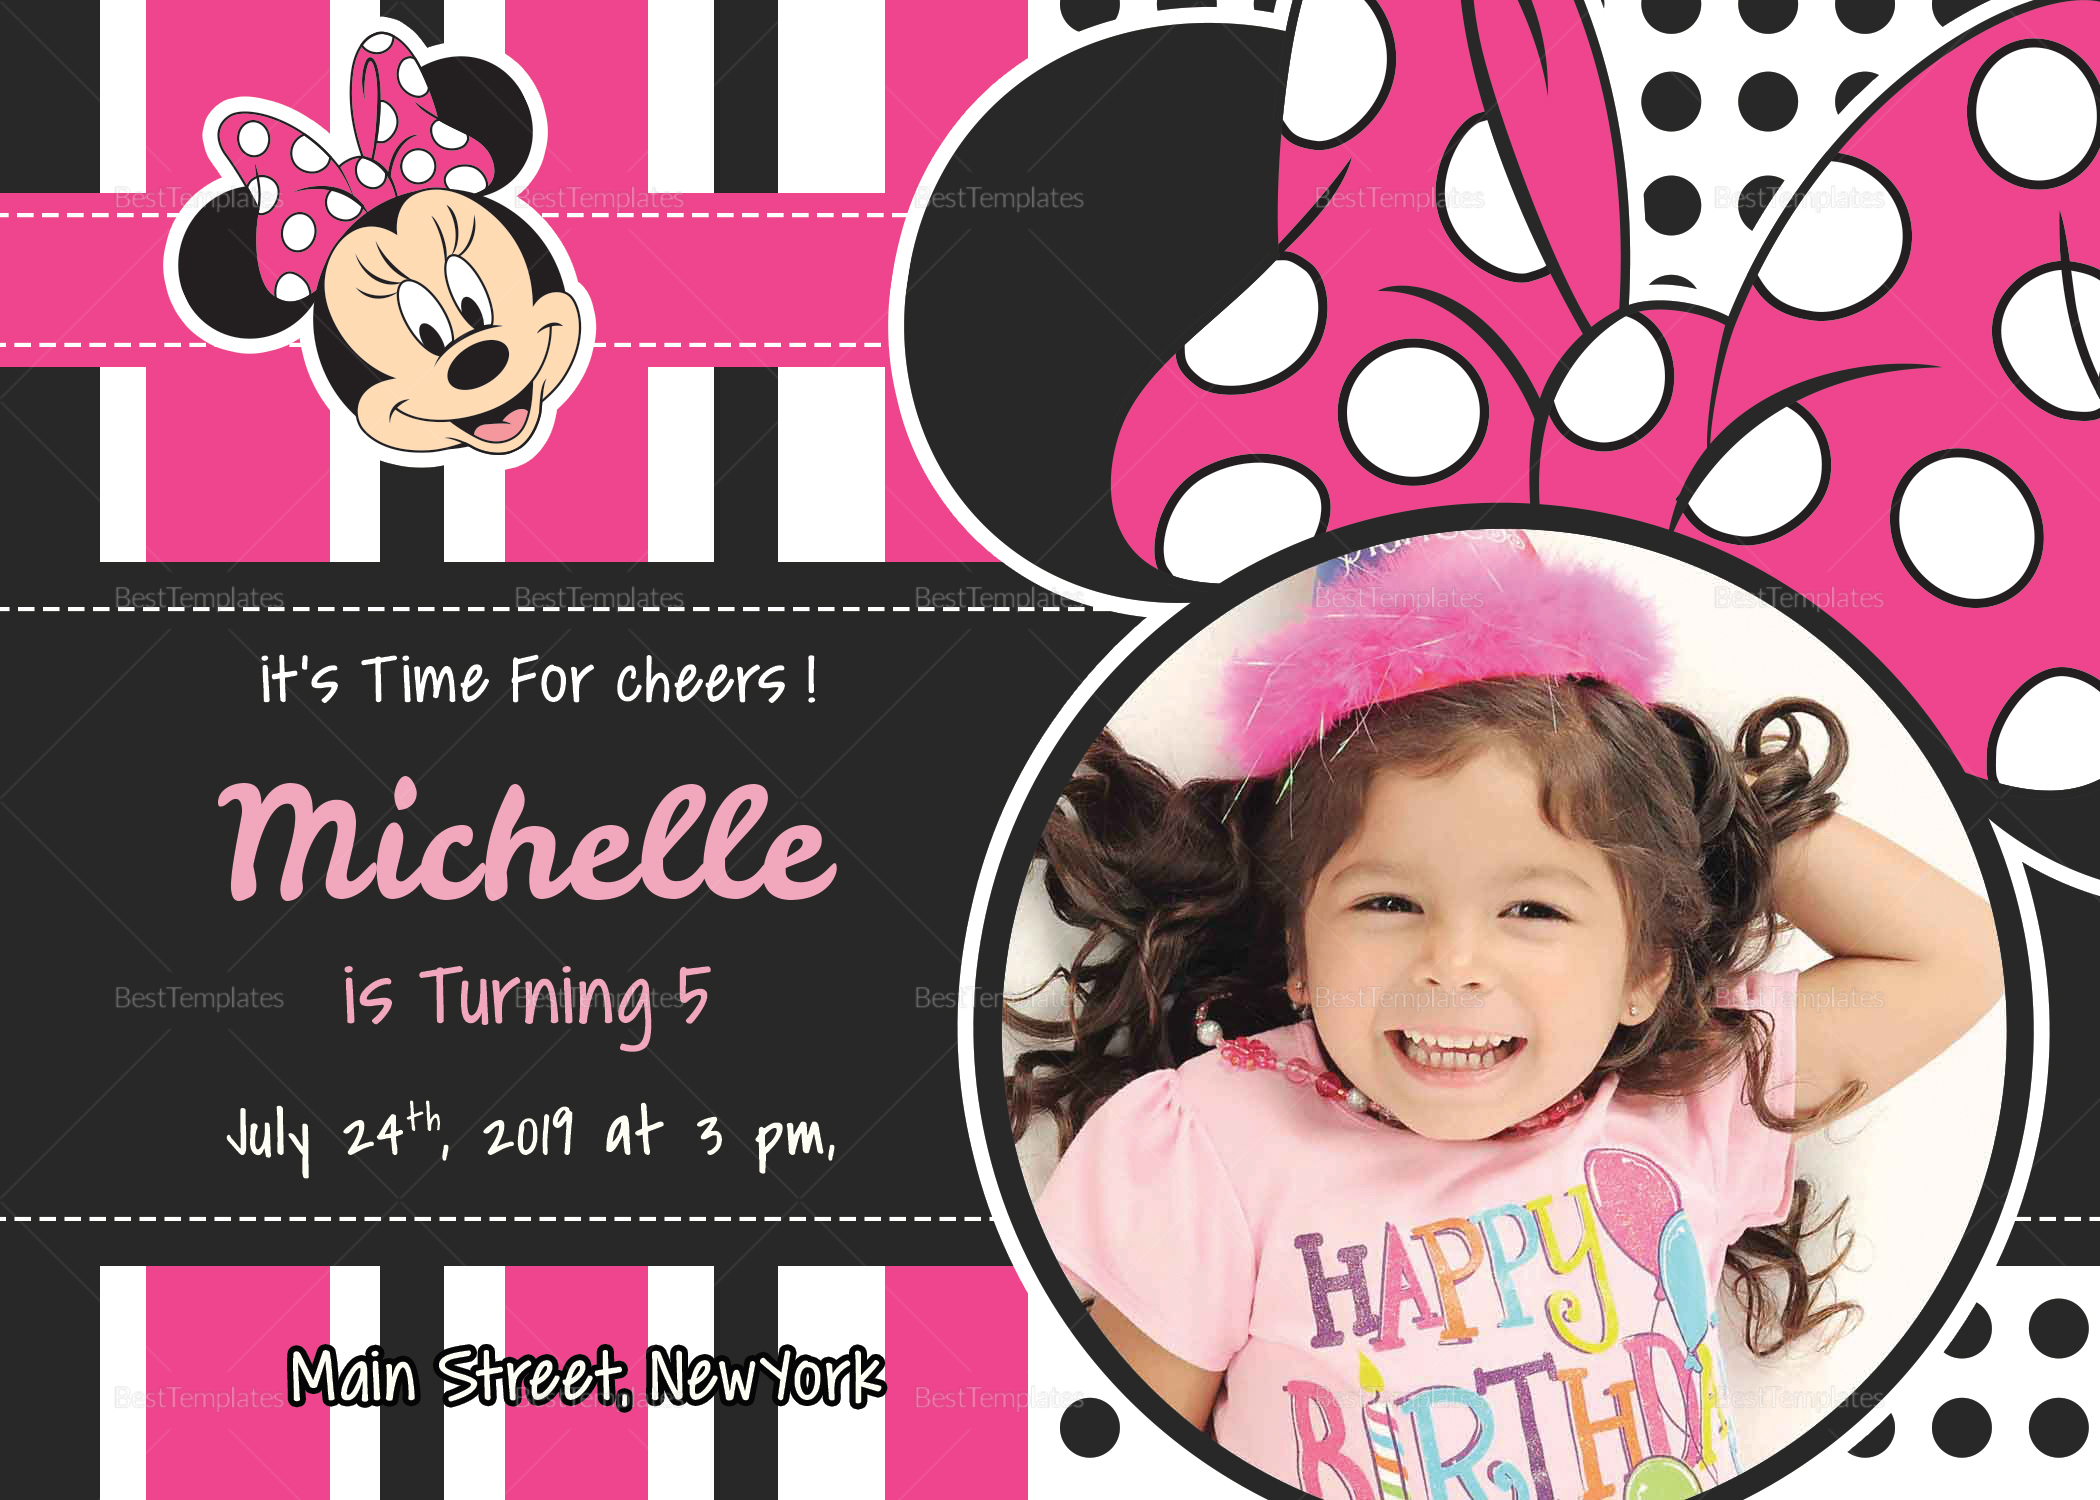 Sparkling Minnie Mouse Birthday Invitation Card Design Template In - Minnie mouse birthday invitation images